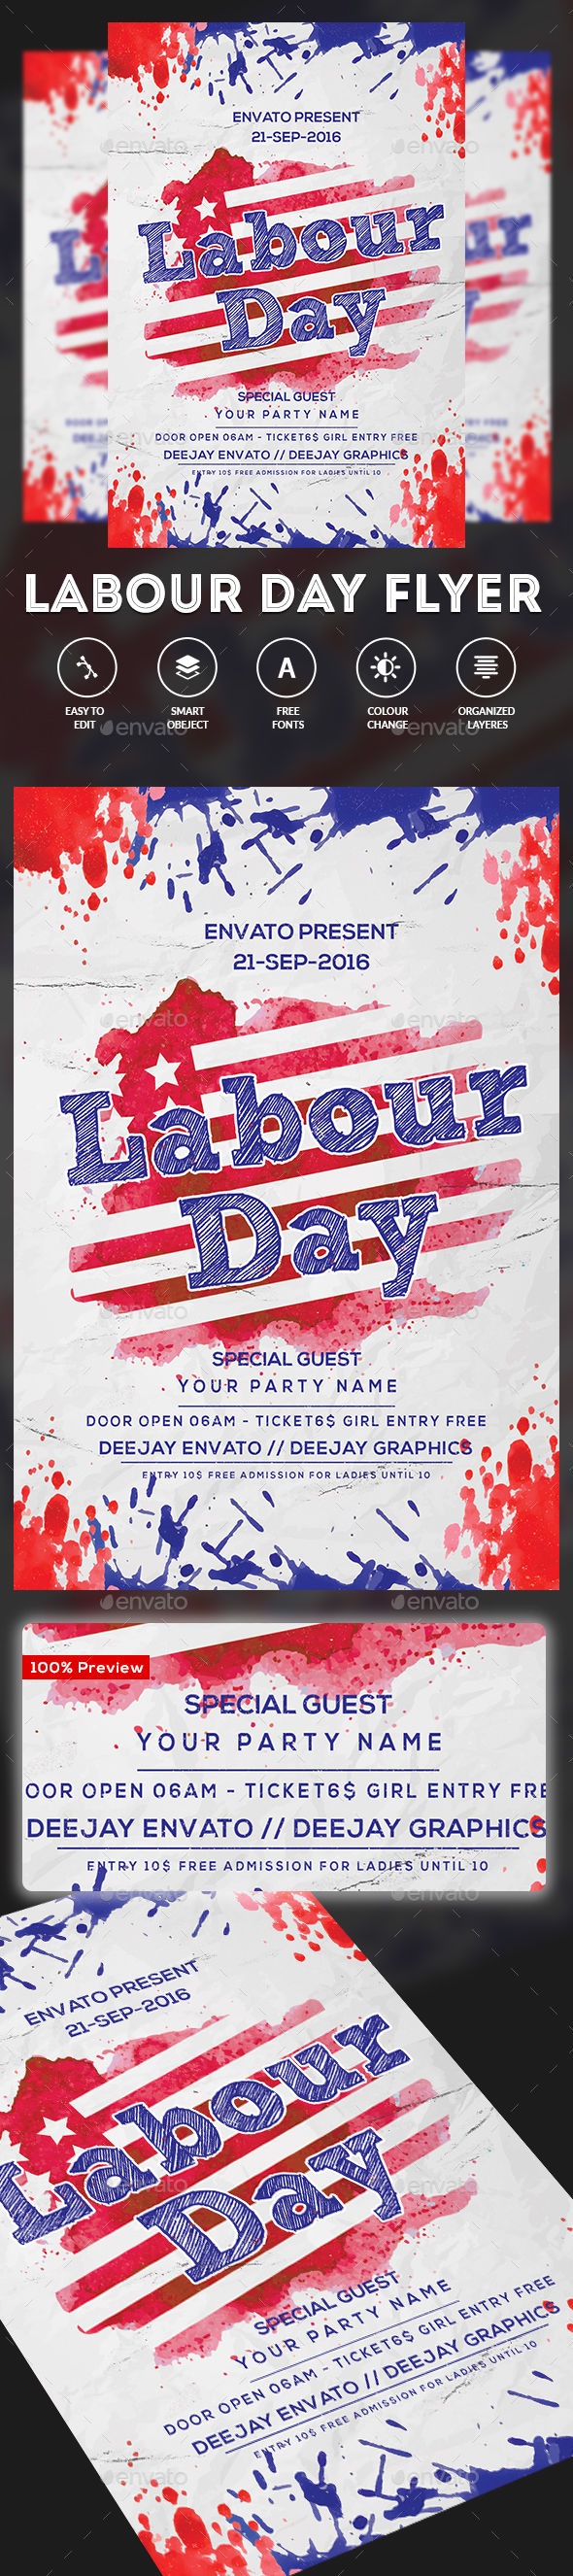 Labor Day Flyer by DUrgaDesigns (Labor Day party flyer)